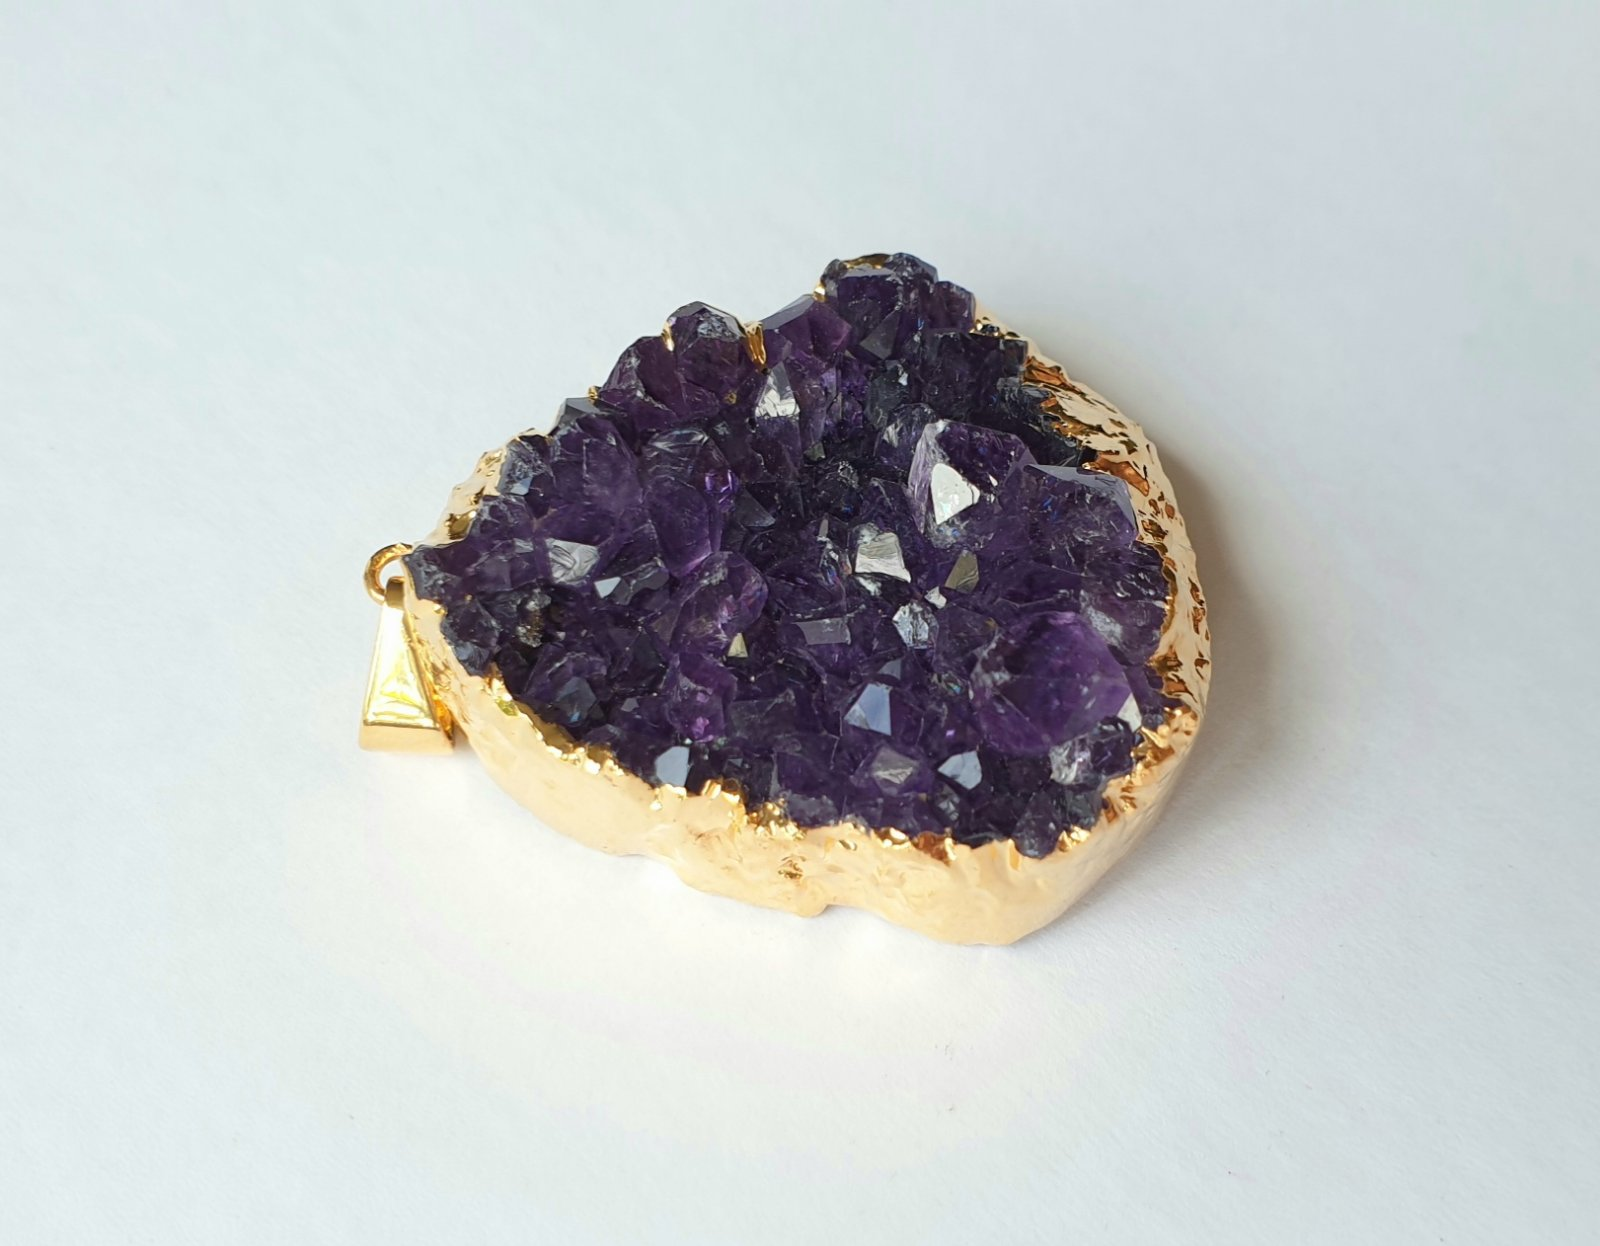 Amethyst druzy, electroplated yellow gold pendant AD-04